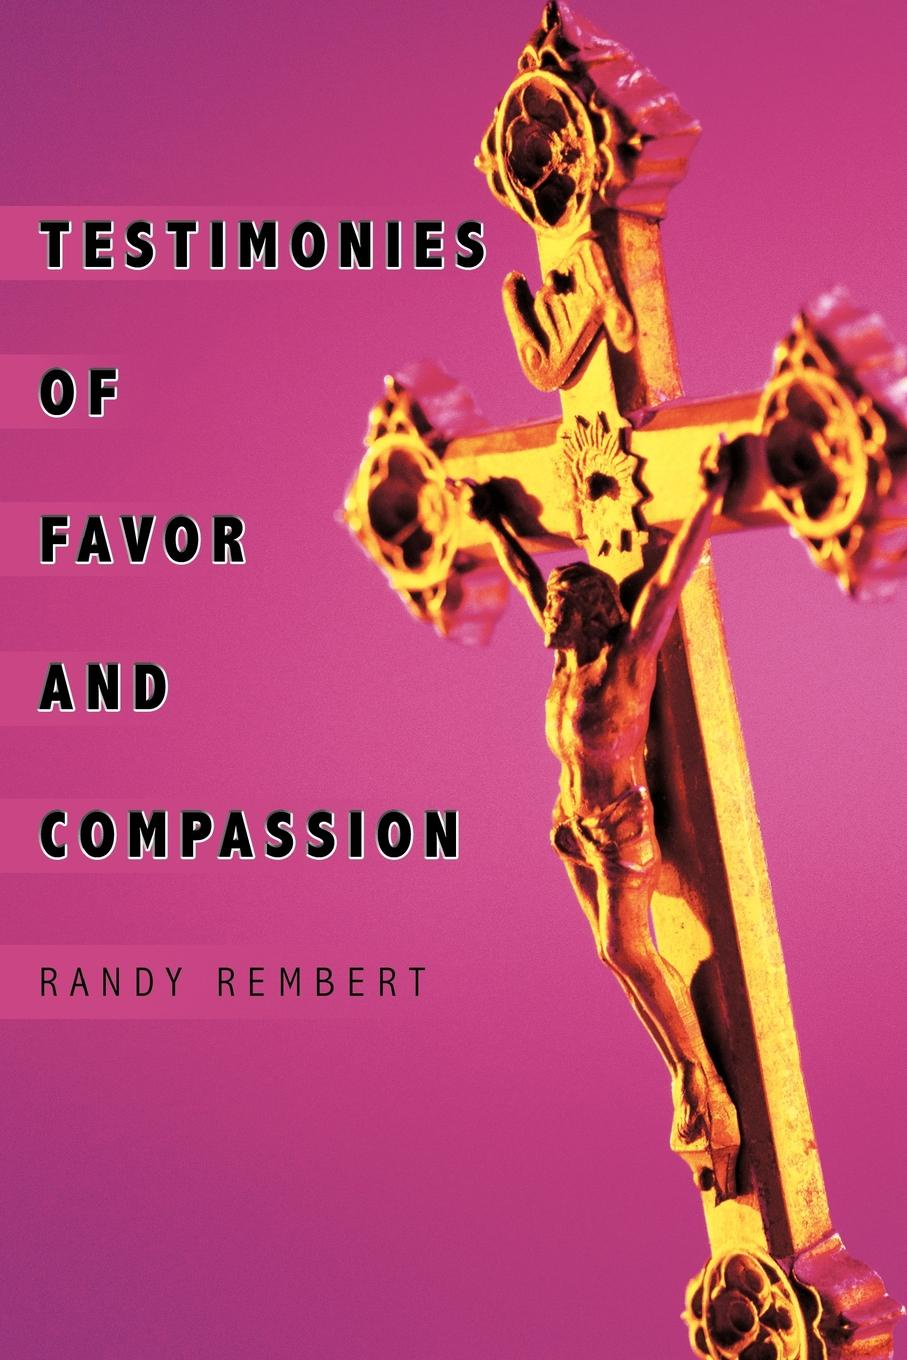 Randy Rembert Testimonies of Favor and Compassion olukayode oyediran he leadeth me autobiographical testimonies of olukayode oyediran